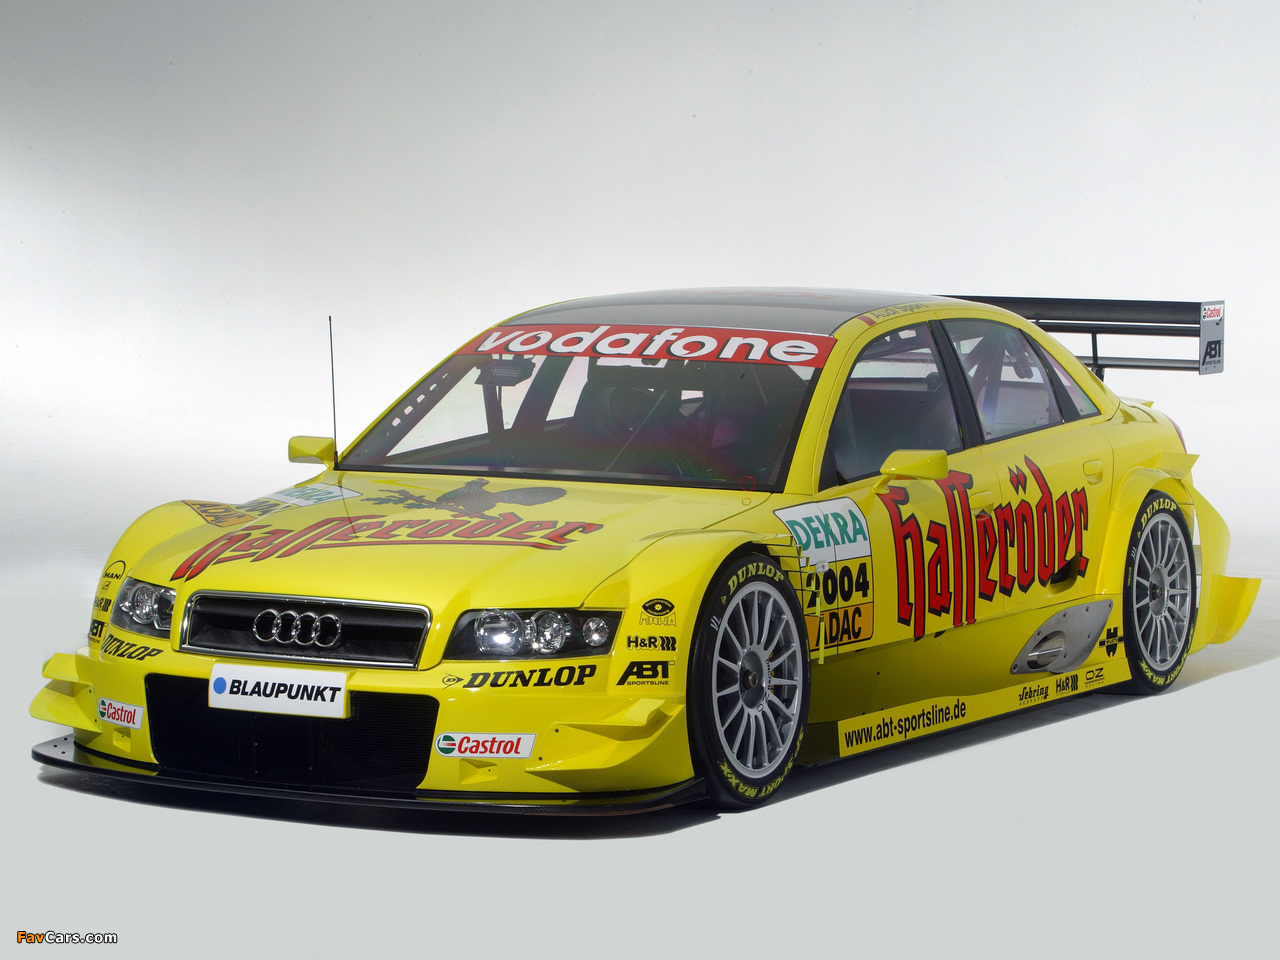 Wallpapers Of Audi A4 Dtm B6 8e 2004 2006 1280x960